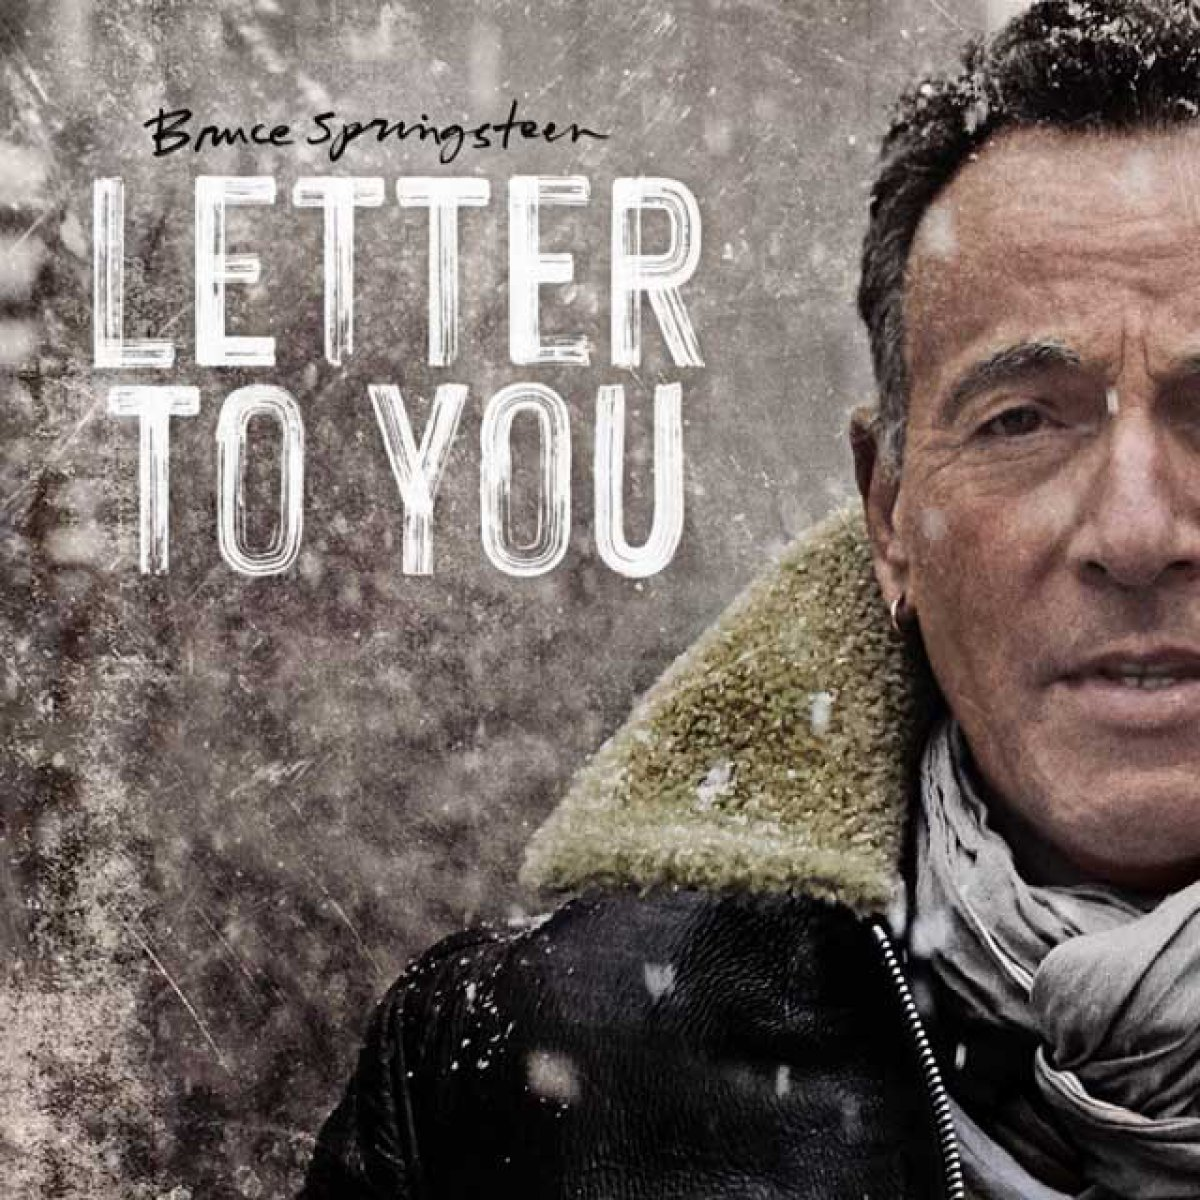 Bruce Springsteen – 'Letter to you'